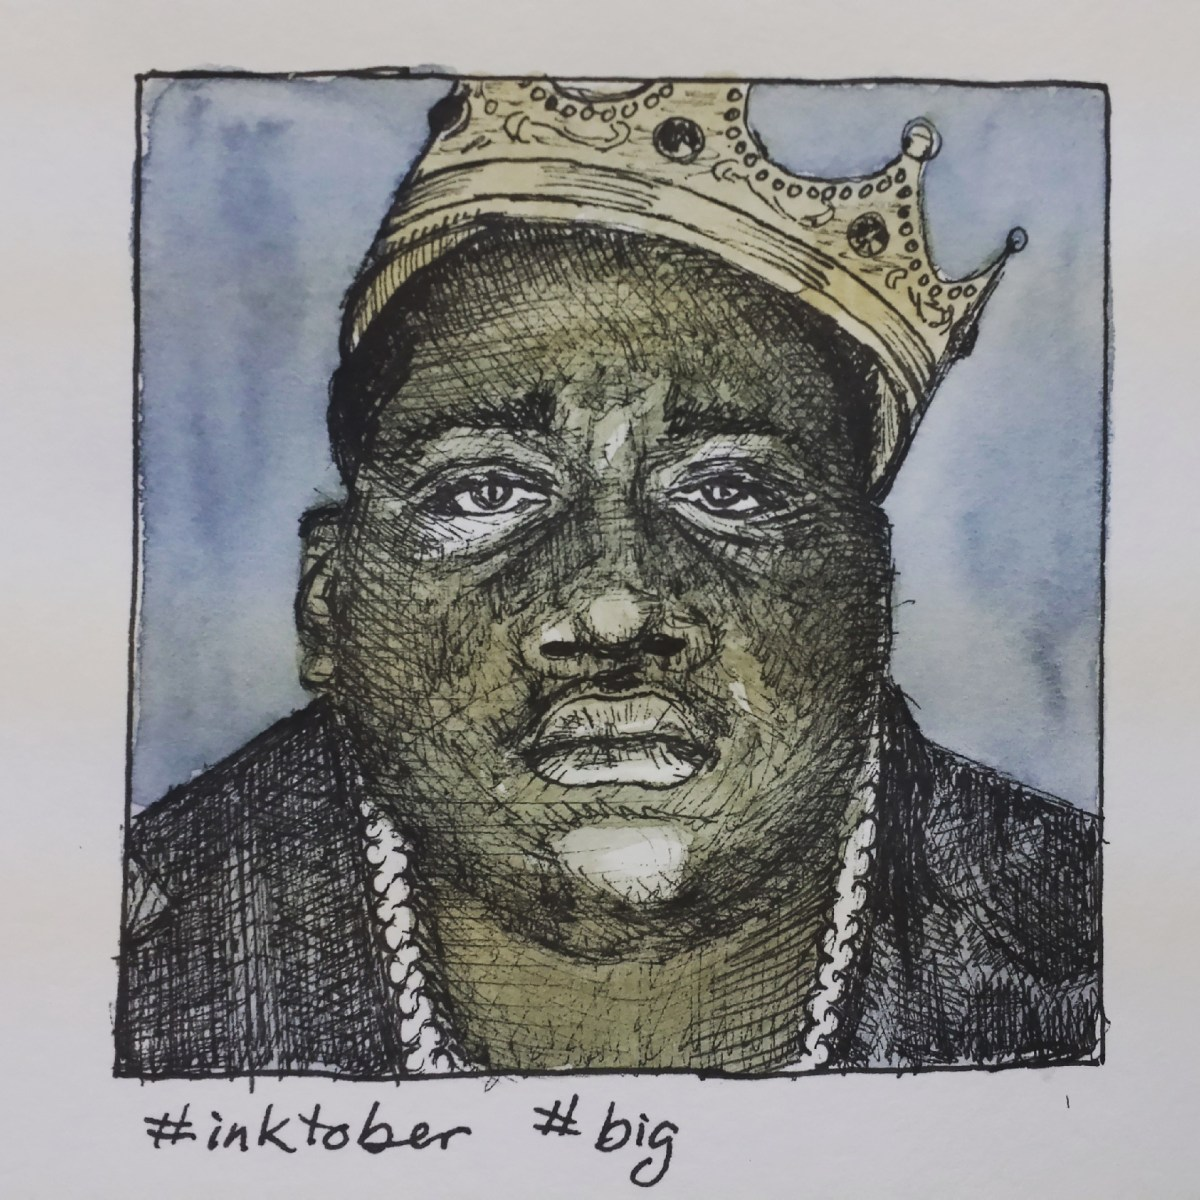 Inktober big, Biggie Smalls